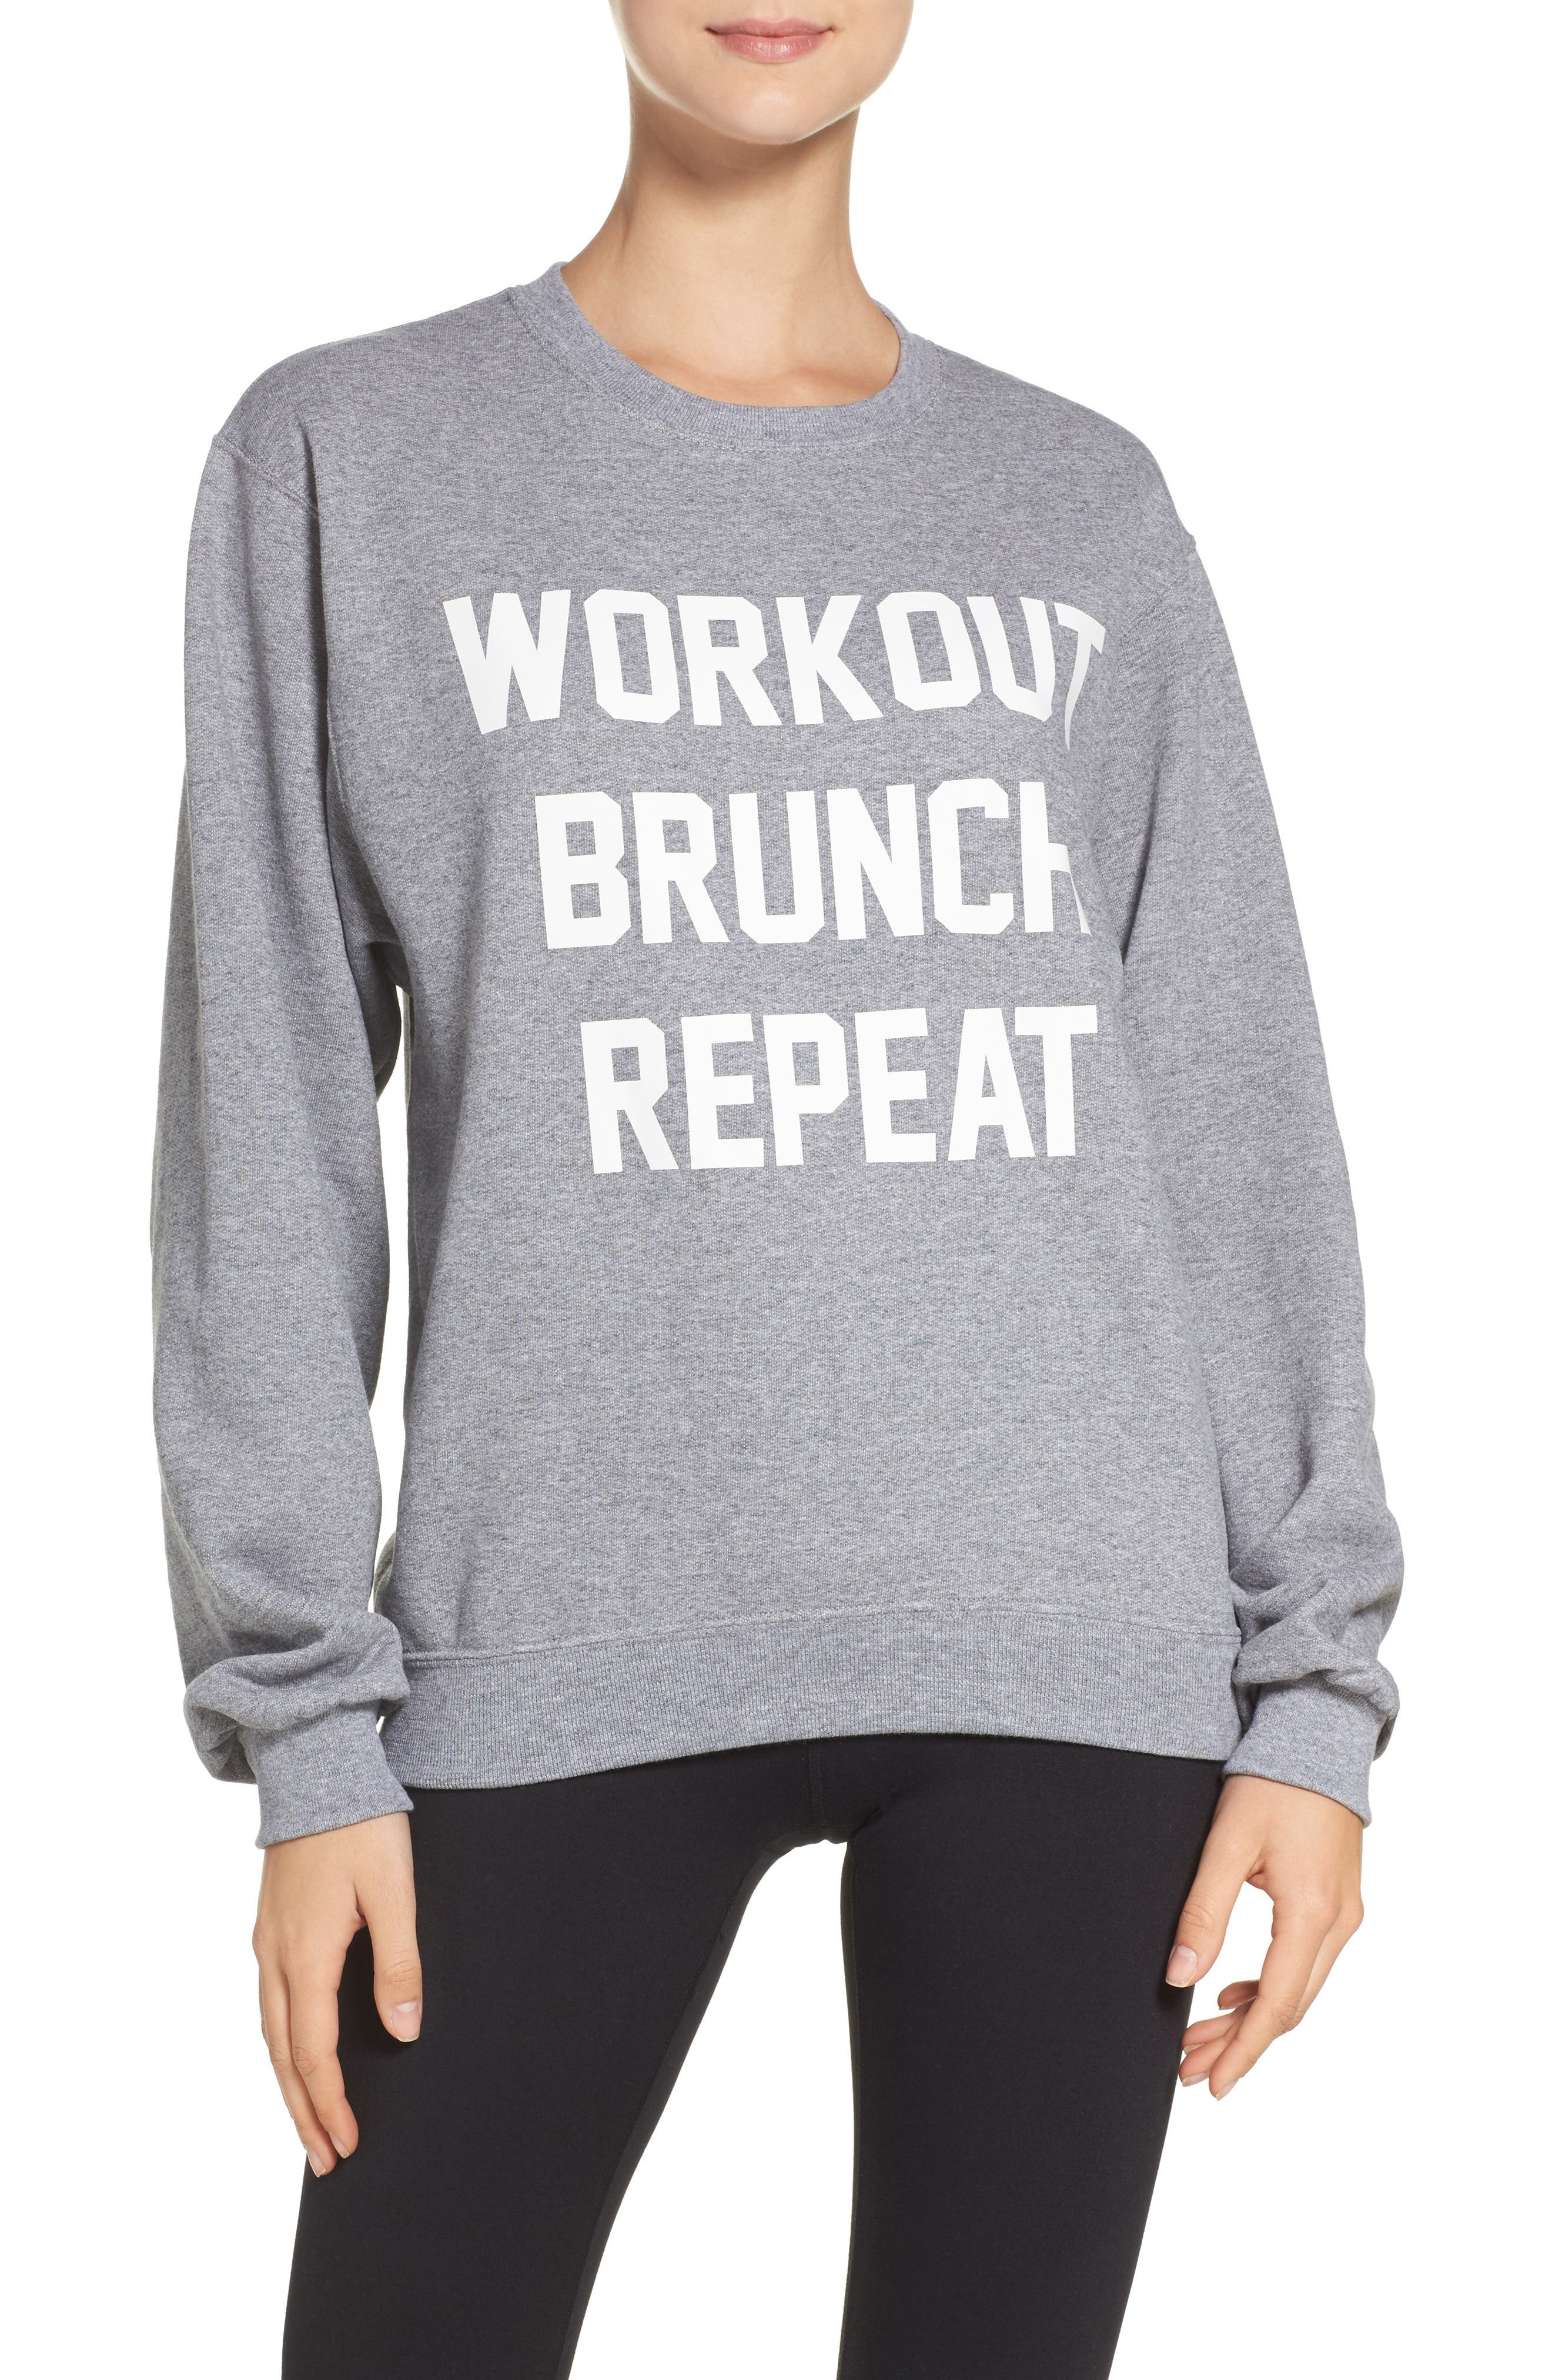 Private Party Workout Brunch Repeat Sweatshirt